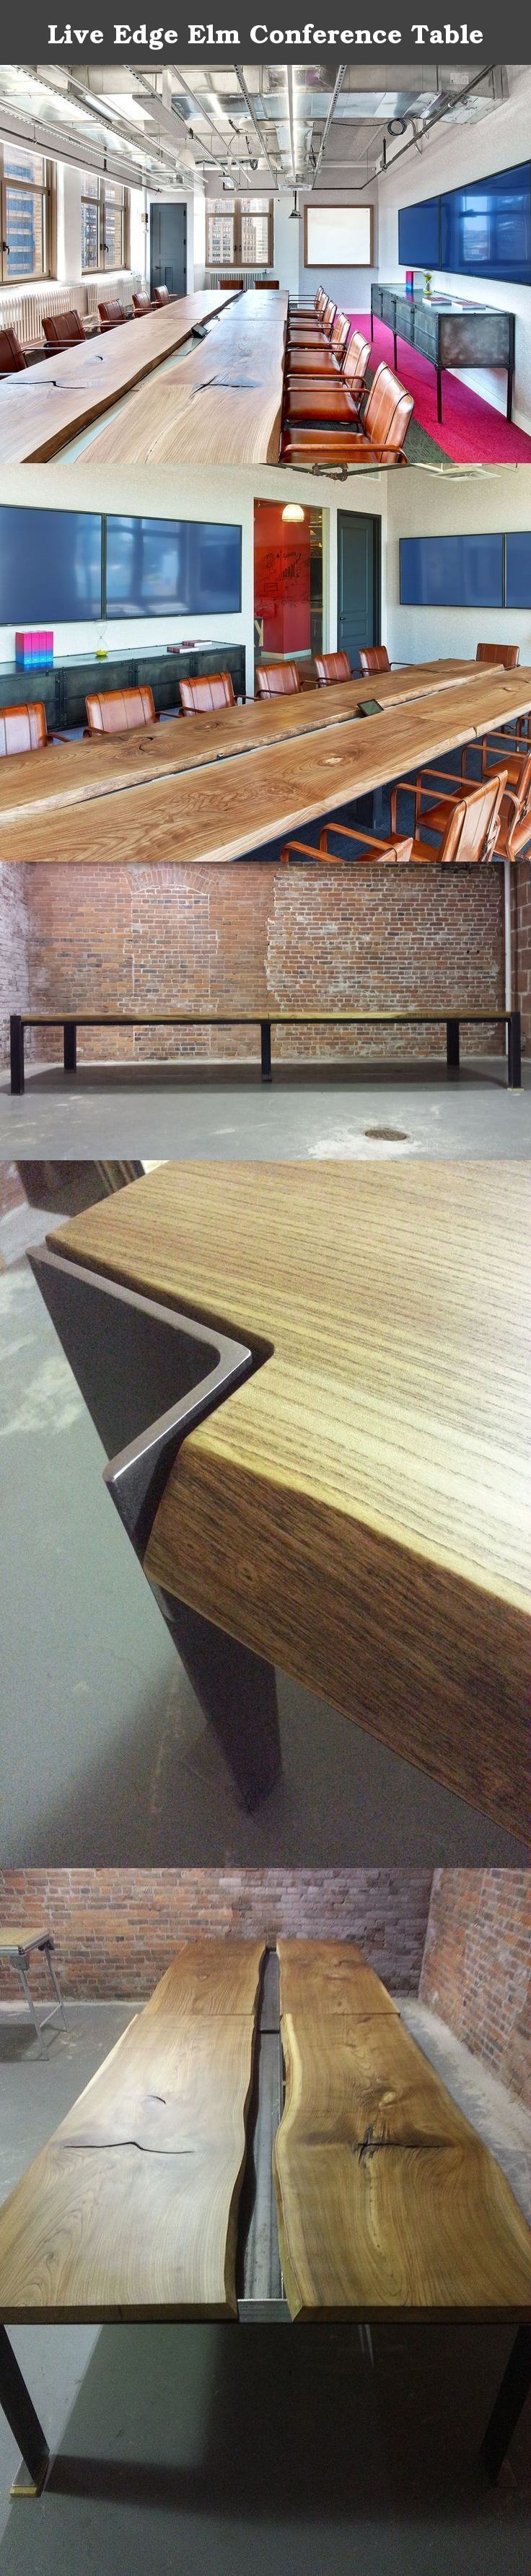 """Live Edge Elm Conference Table. This listing is to showcase my Giant Elm slab conference table. This table is 192"""" x 60"""" x 29"""" with 1/4"""" x 3"""" x 5"""" legs and a generous 1/4"""" x 2"""" x 6"""" cable tray running down the middle. The four matched Elm slabs are about 2.0"""" thick. This is a very heavy and solid table. About 1000 pounds. The Elm is all hand sanded and finished with 5 coats of specially formulated oil to a baby soft luster. The legs are cleaned and hand rubbed with a hot wax finish. Both…"""